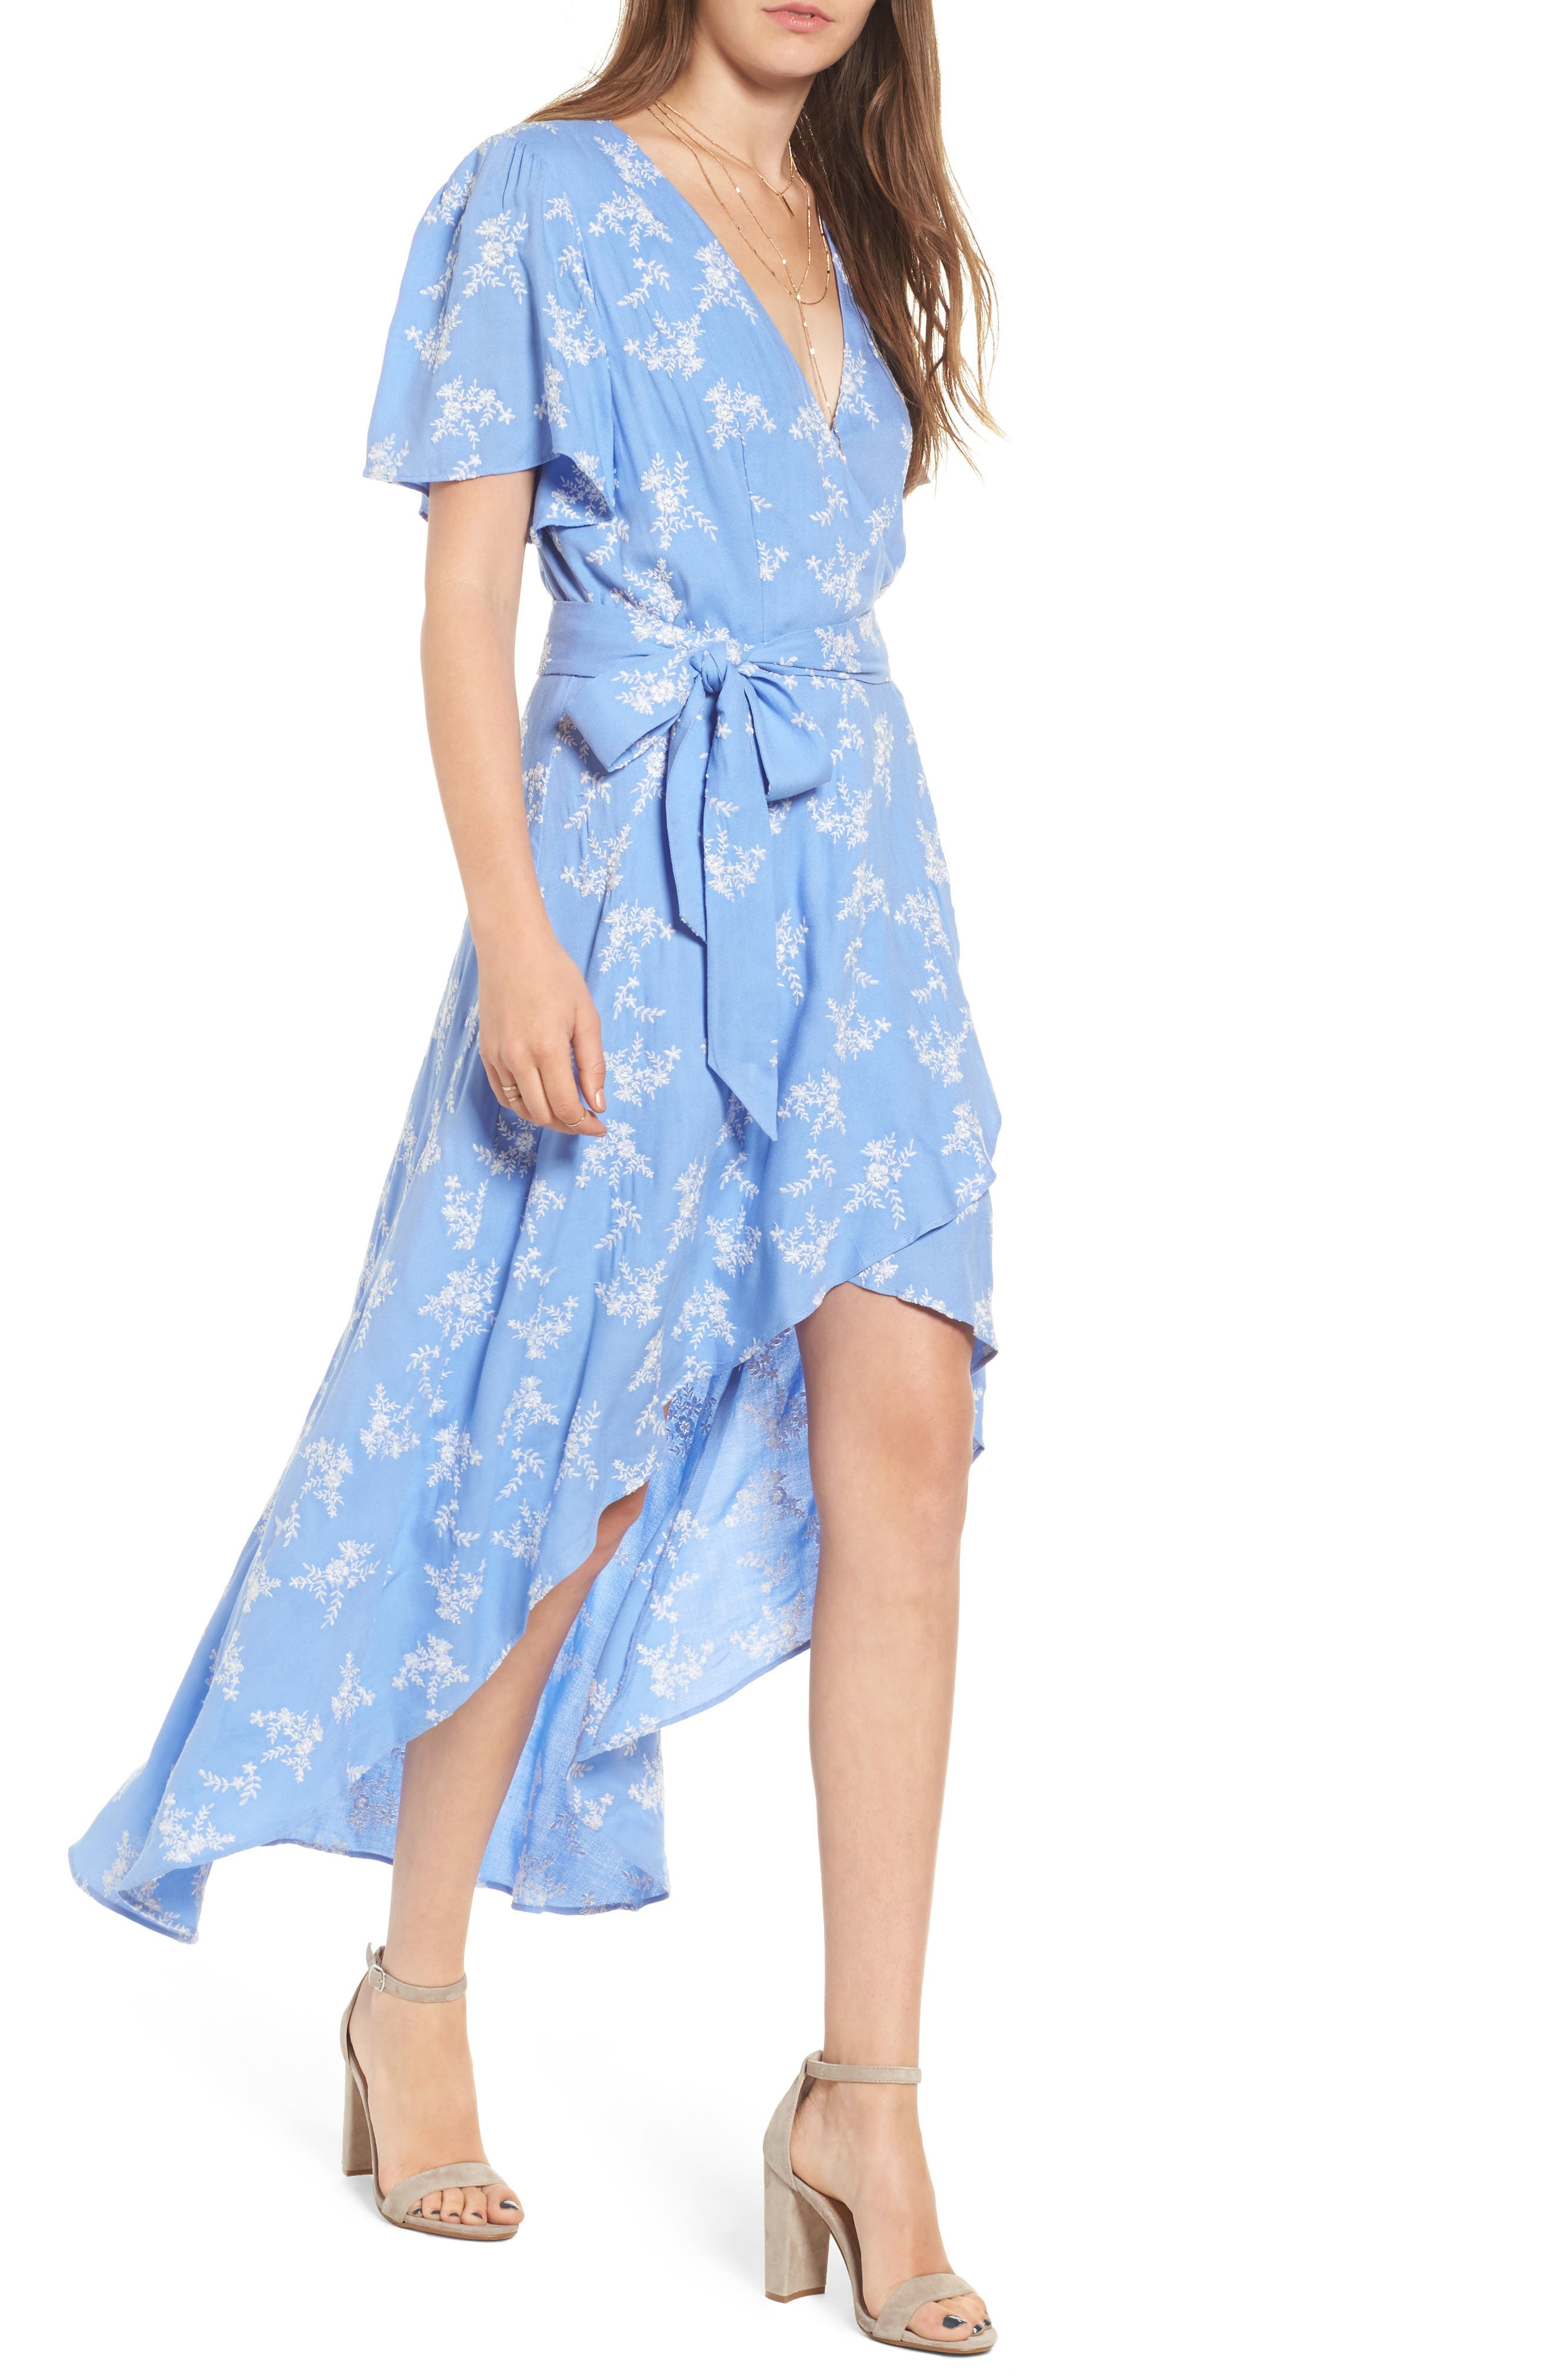 devlin Pax Wrap Dress